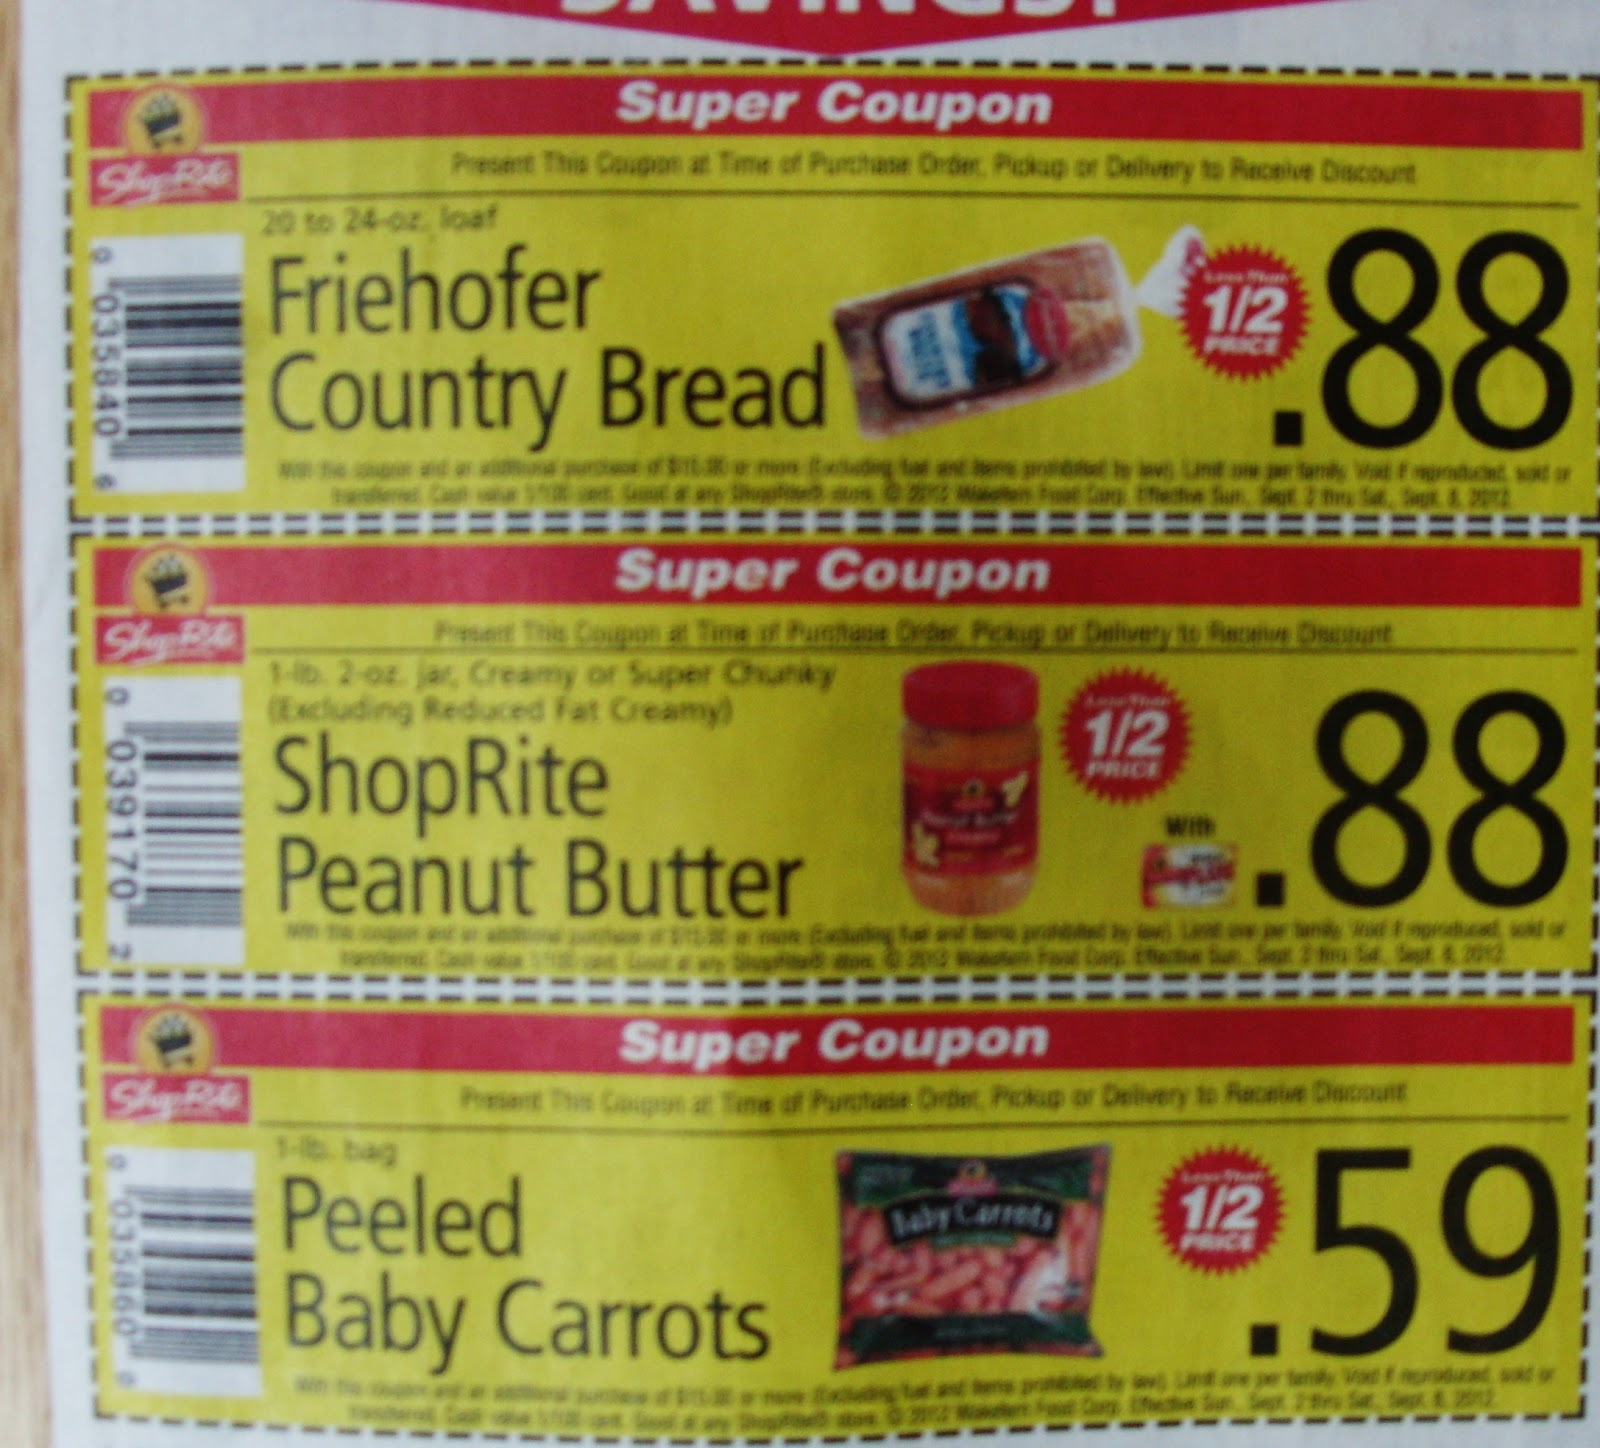 Best Of Shoprite Coupon Matchups Amp Deals 9 2 9 8